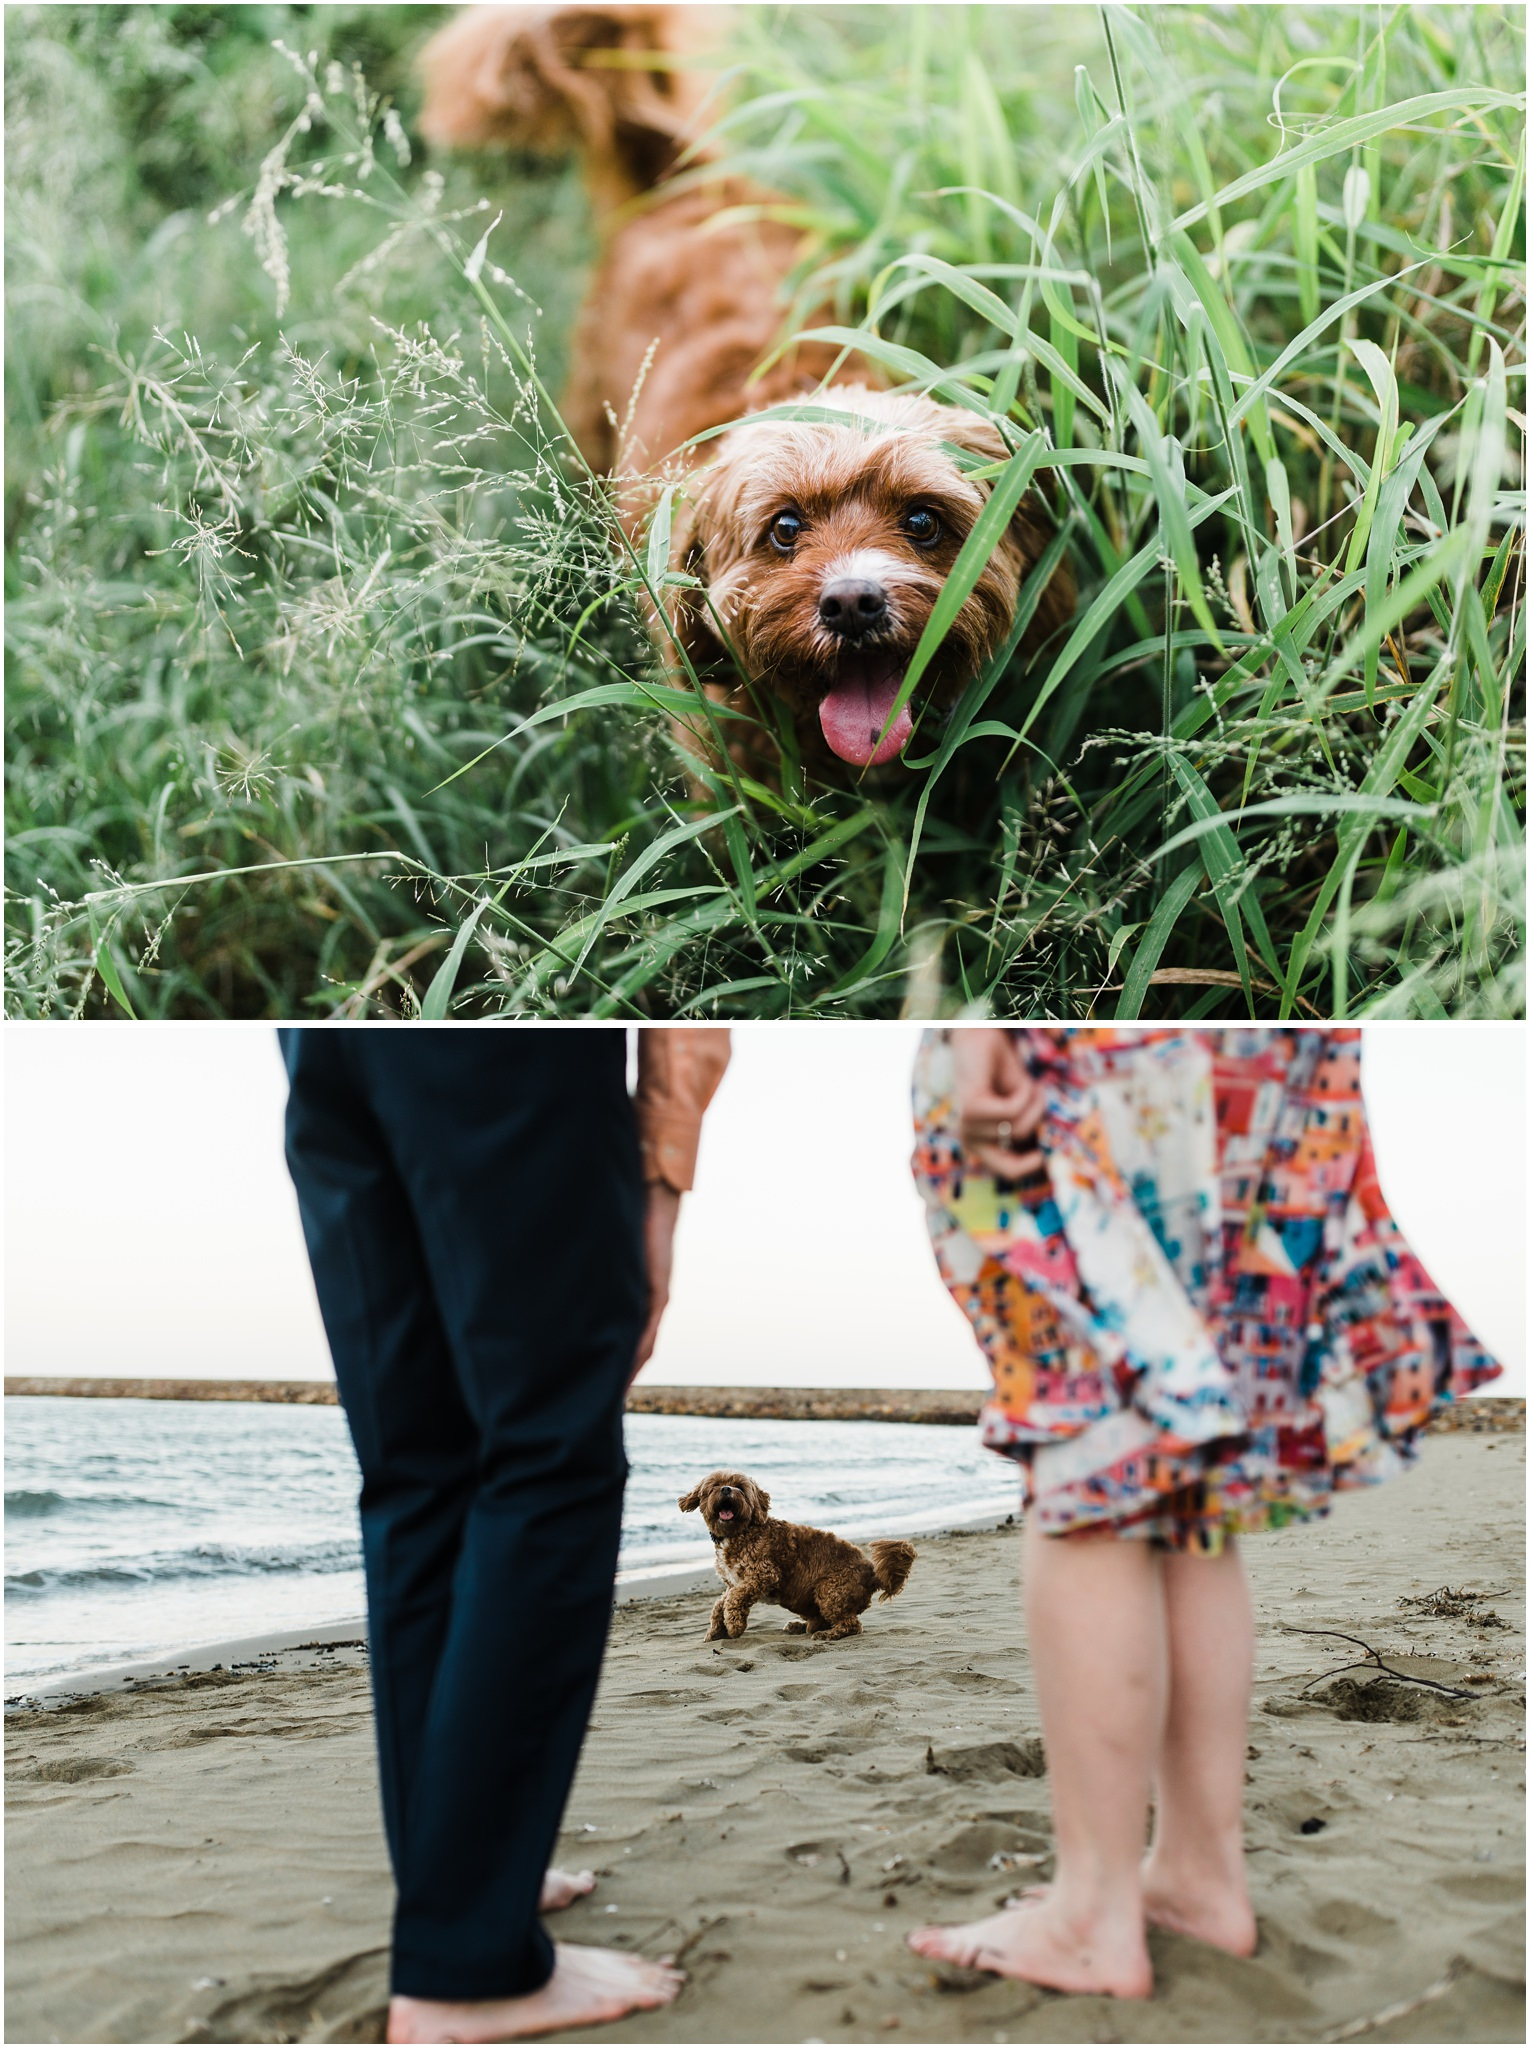 brisbane-brighton-sandgate-engagement-pet-photography-cute-doggo33.jpg